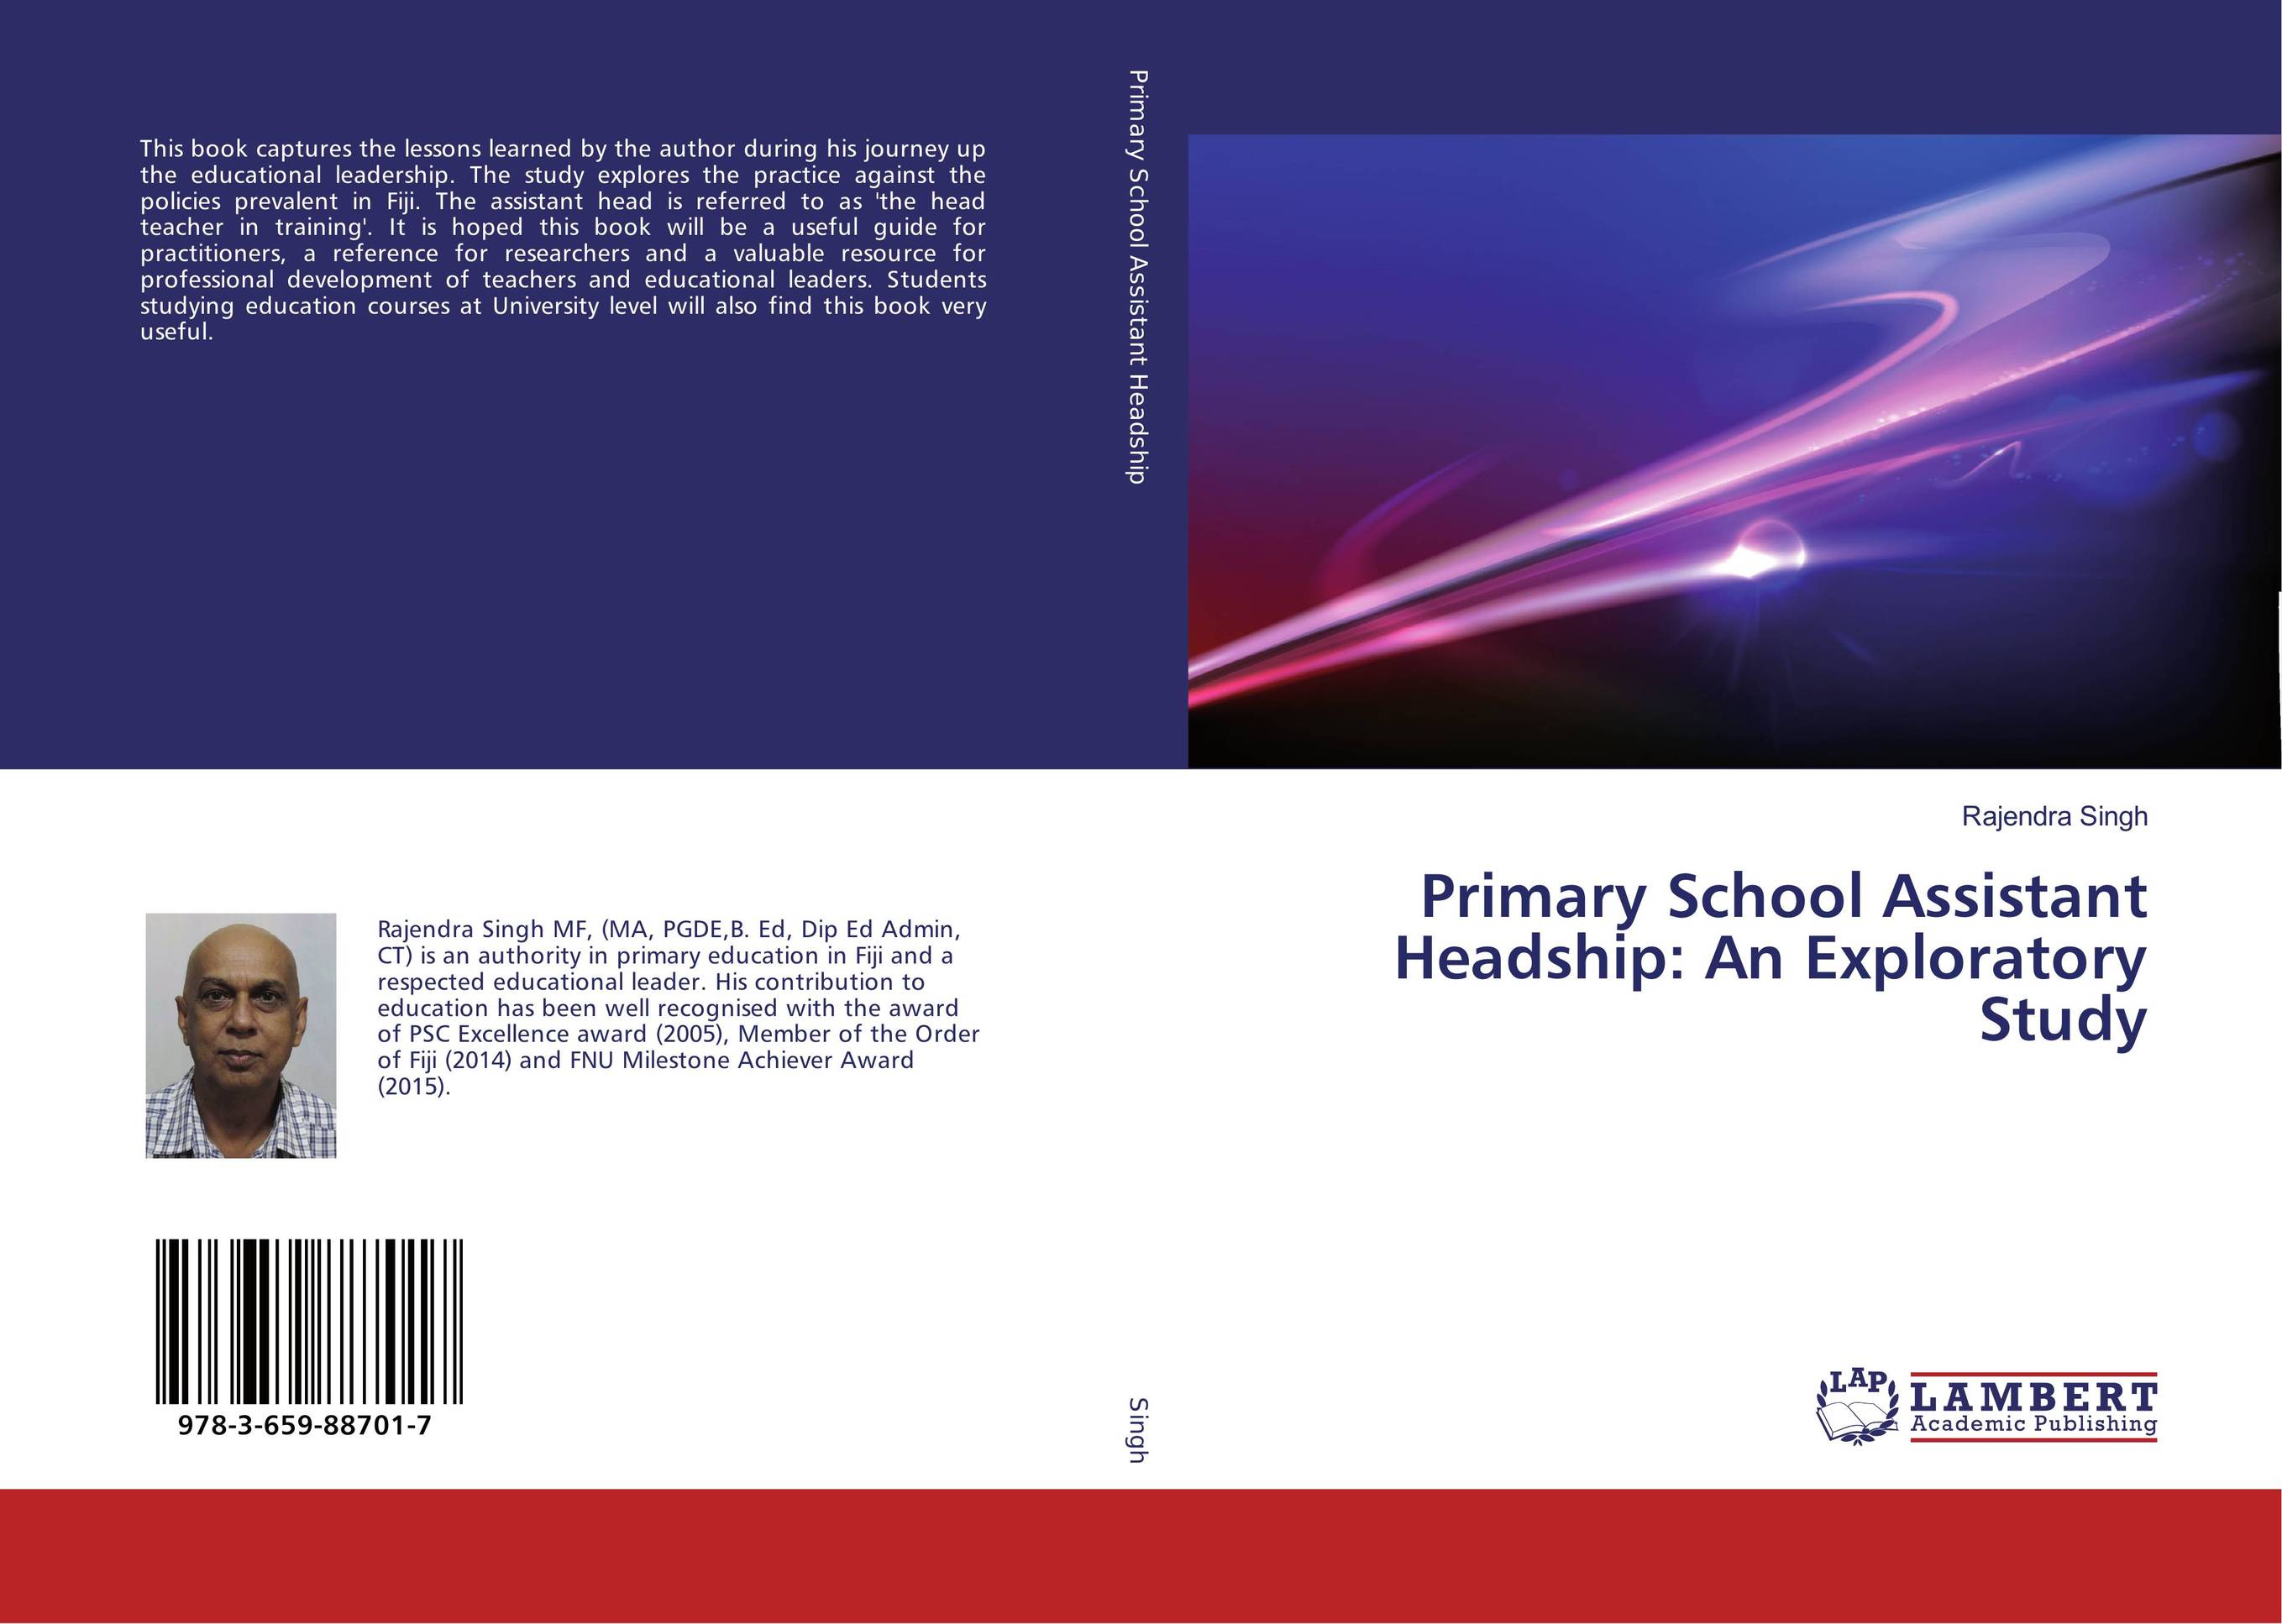 Primary School Assistant Headship: An Exploratory Study the assistant principalship as a career